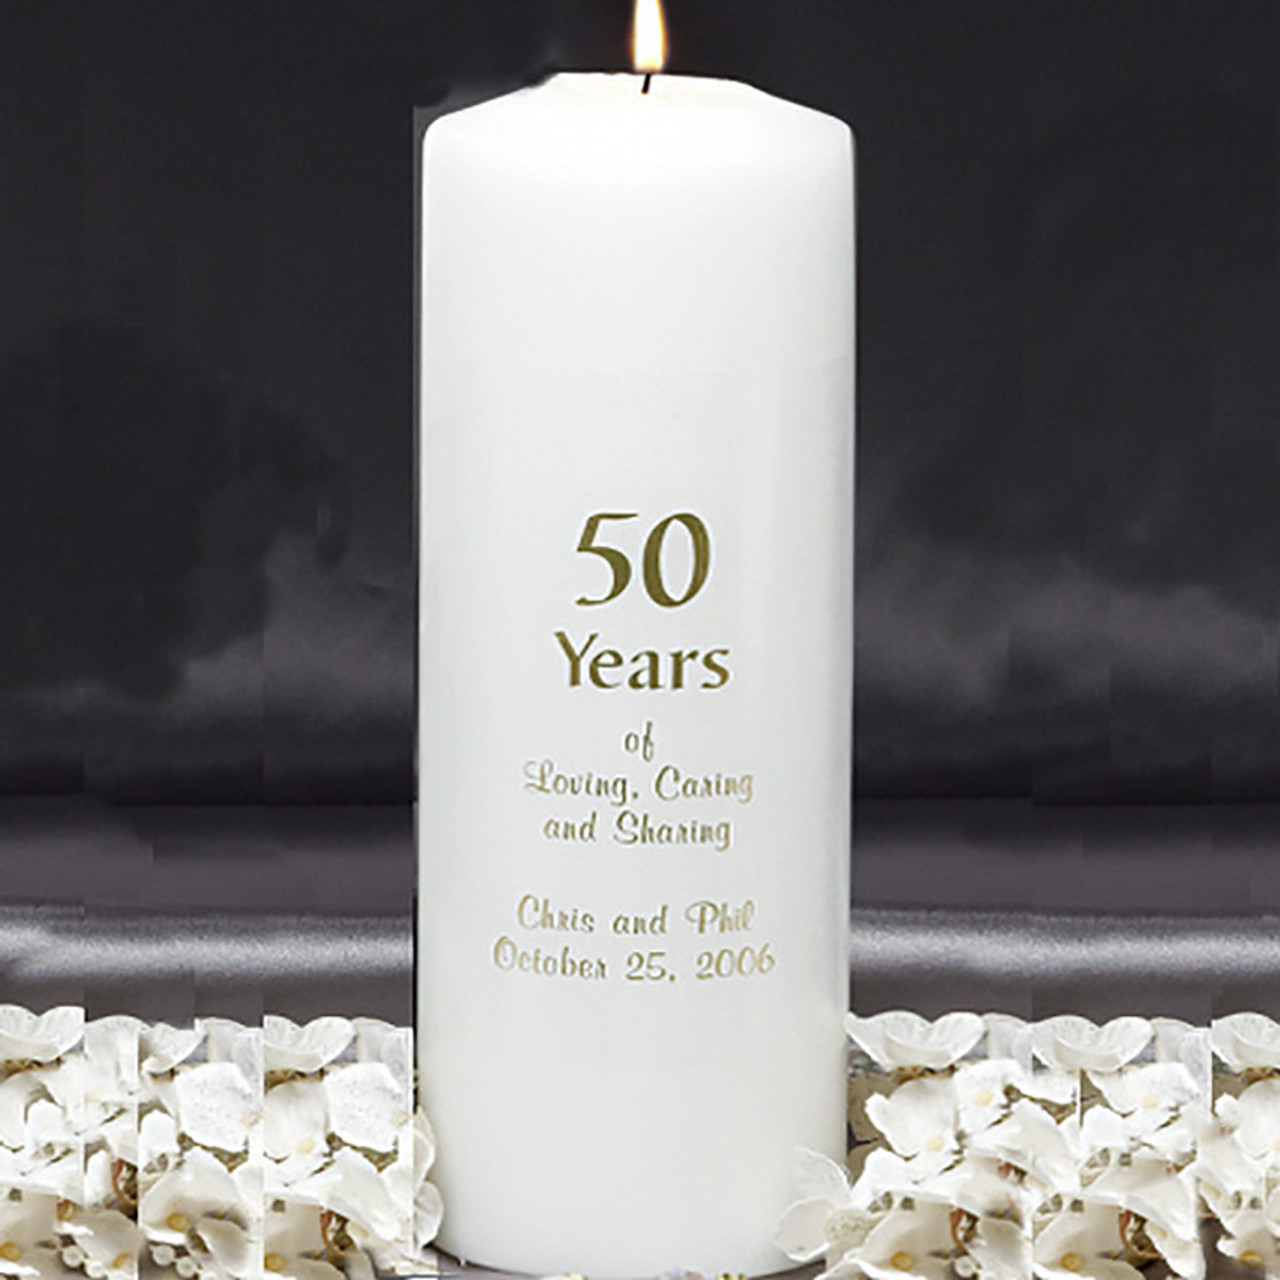 custom candles anniversary 50 years personalized candles glass